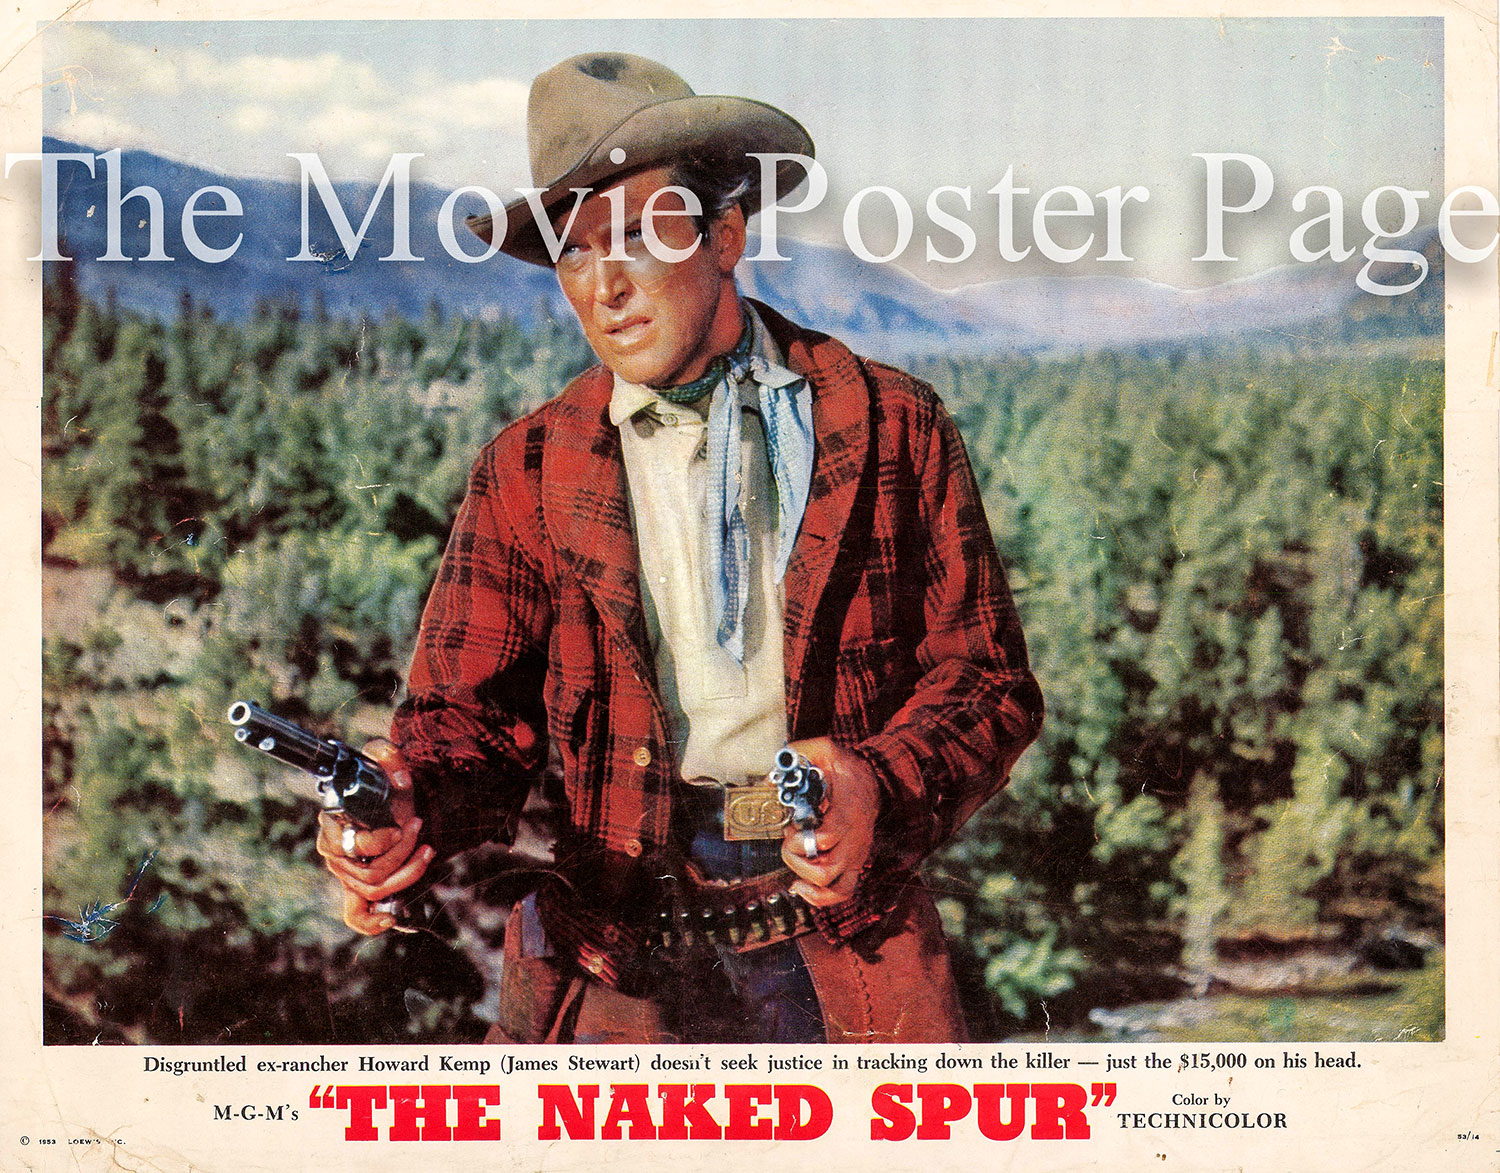 Pictured is a US promotional lobby card for the 1953 Anthony Mann film The Naked Spur starring James Stewart.